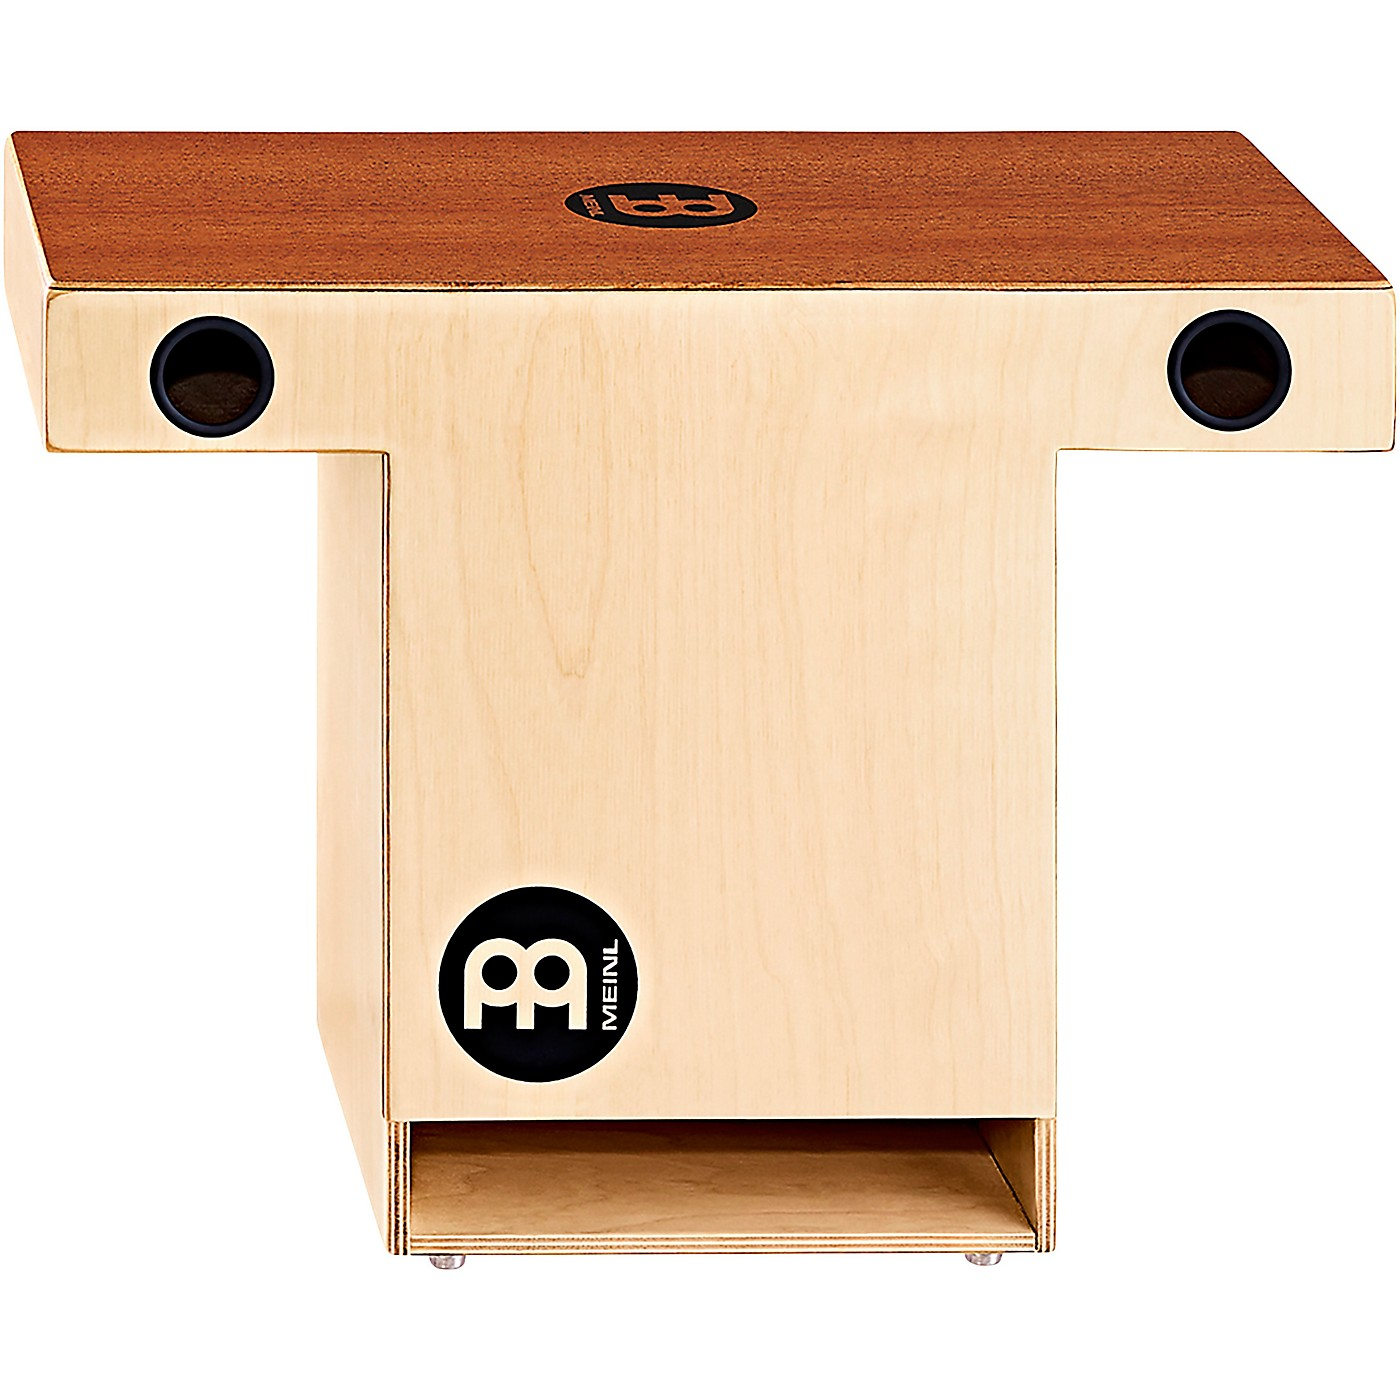 Meinl Turbo Slaptop Cajon with Baltic Birch Body and Mahogany Playing Surface thumbnail